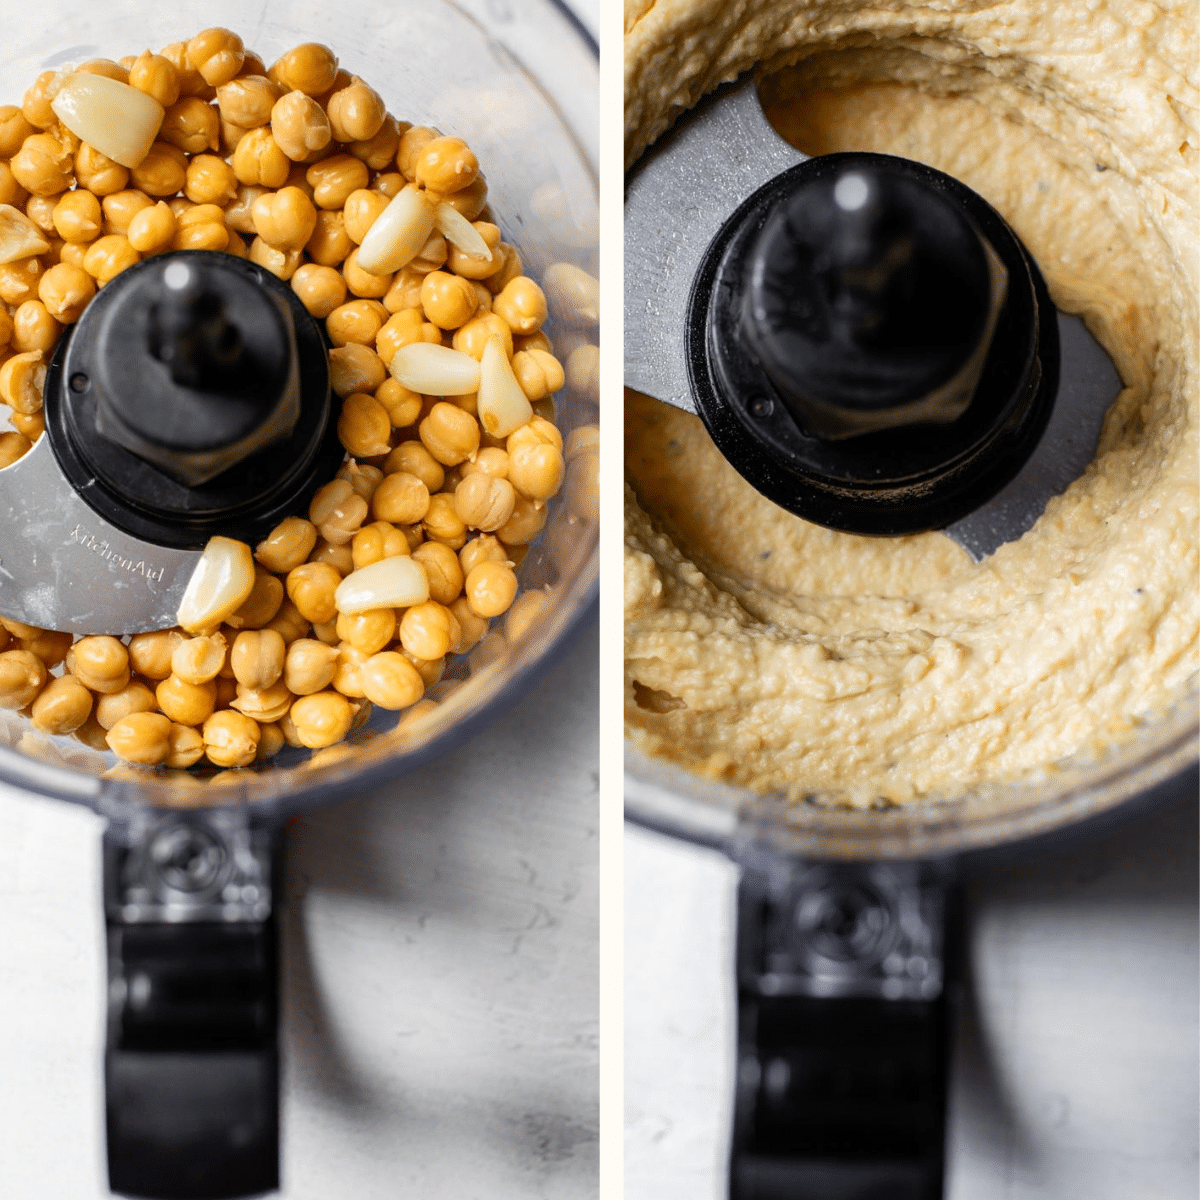 chickpeas and hummus in a food processor